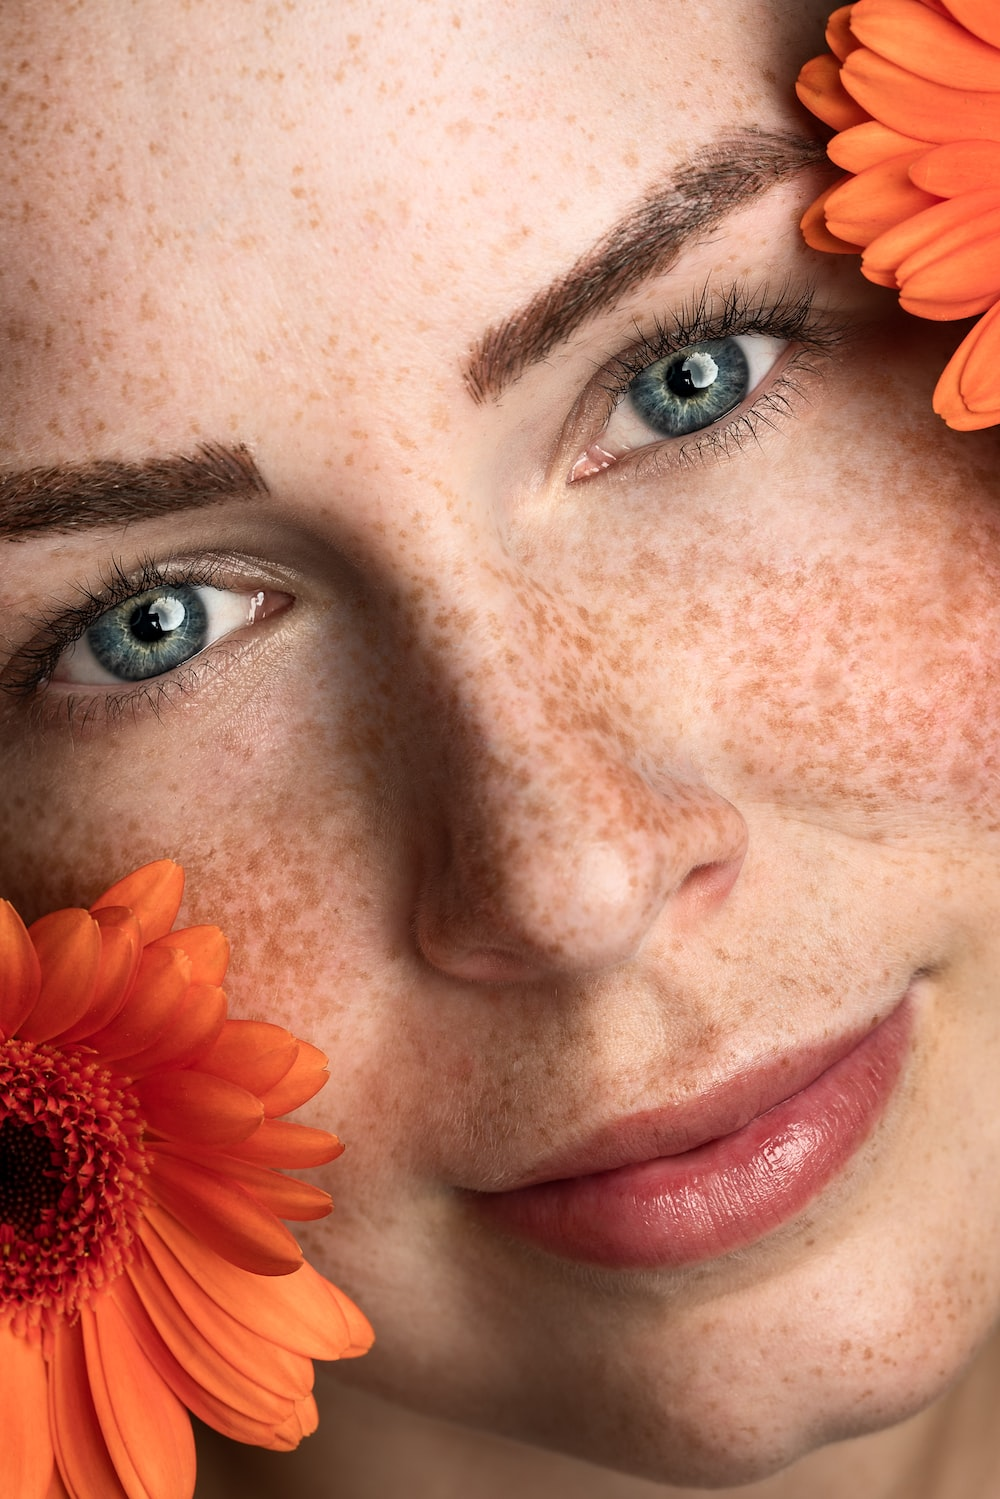 woman with orange petaled flower on the ears